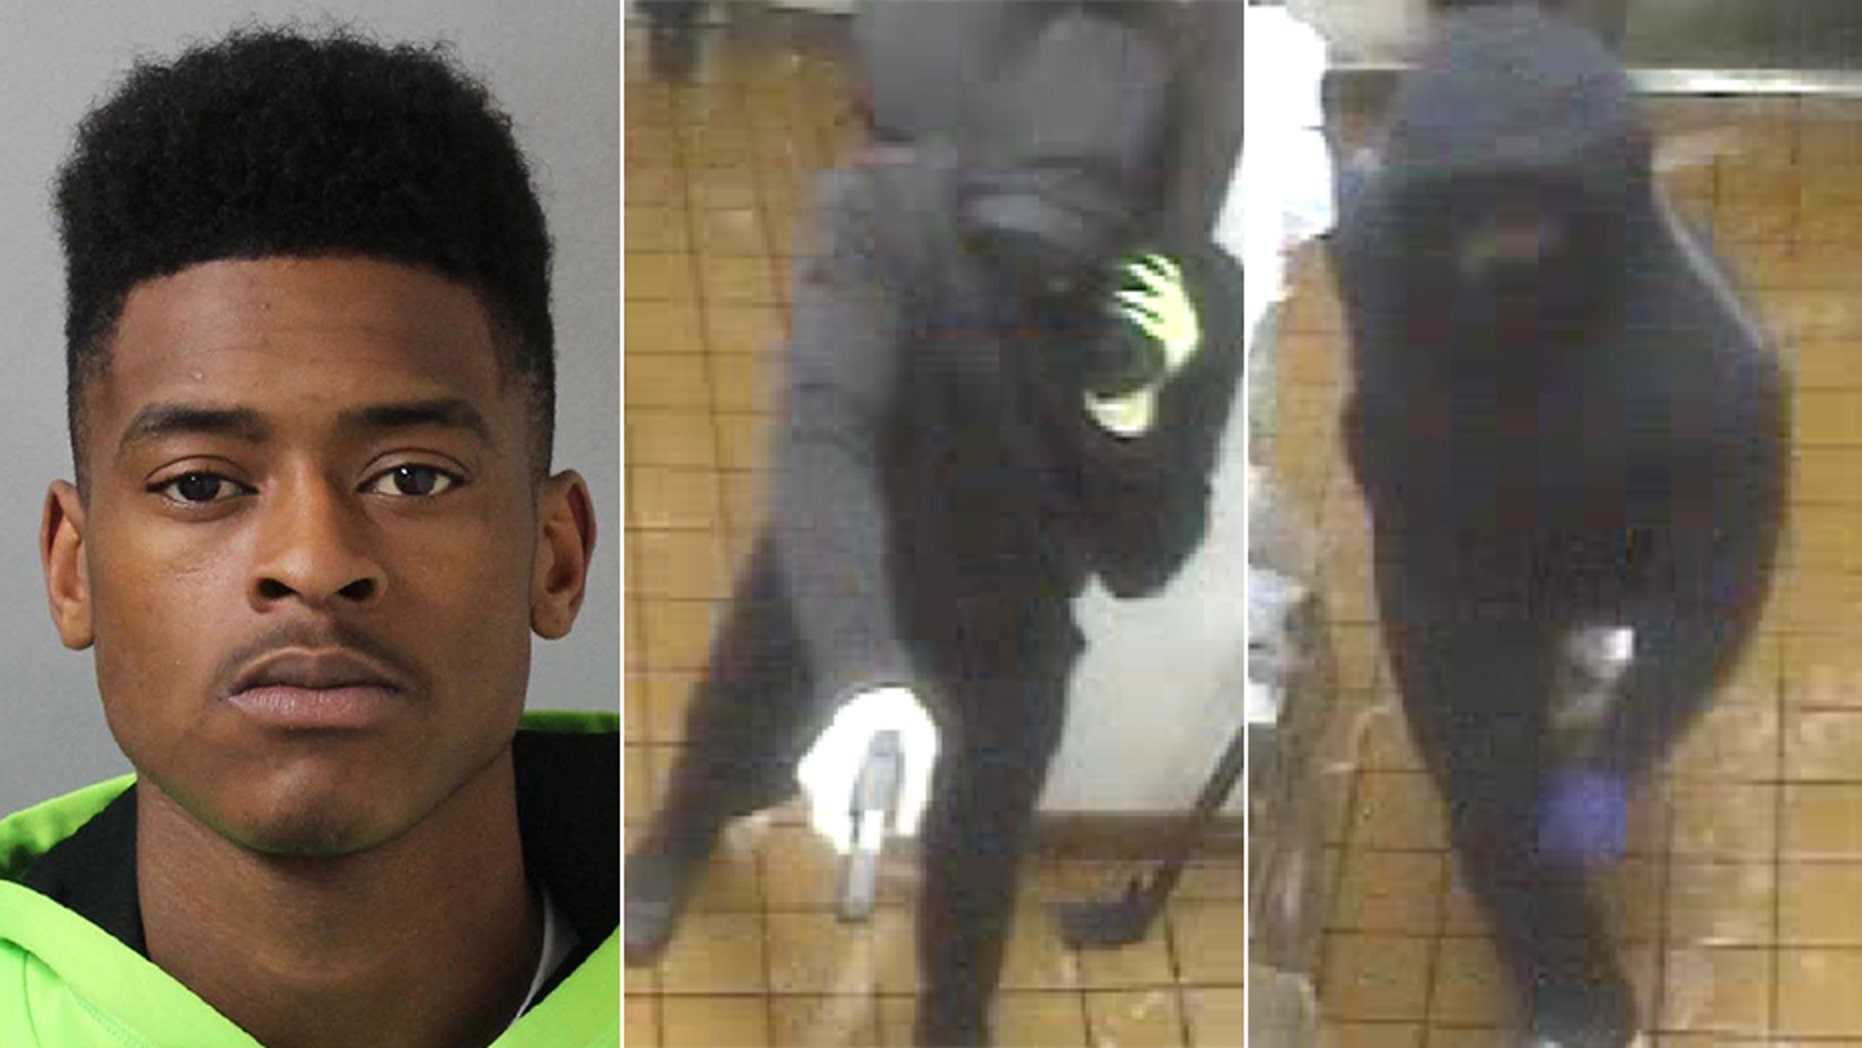 Nashville Police say Kenneth Jernigan, left, was one of the three armed men who tried to rob a Burger King restaurant on Monday night. Jernigan was killed during the incident and the other two suspects have not yet been found.